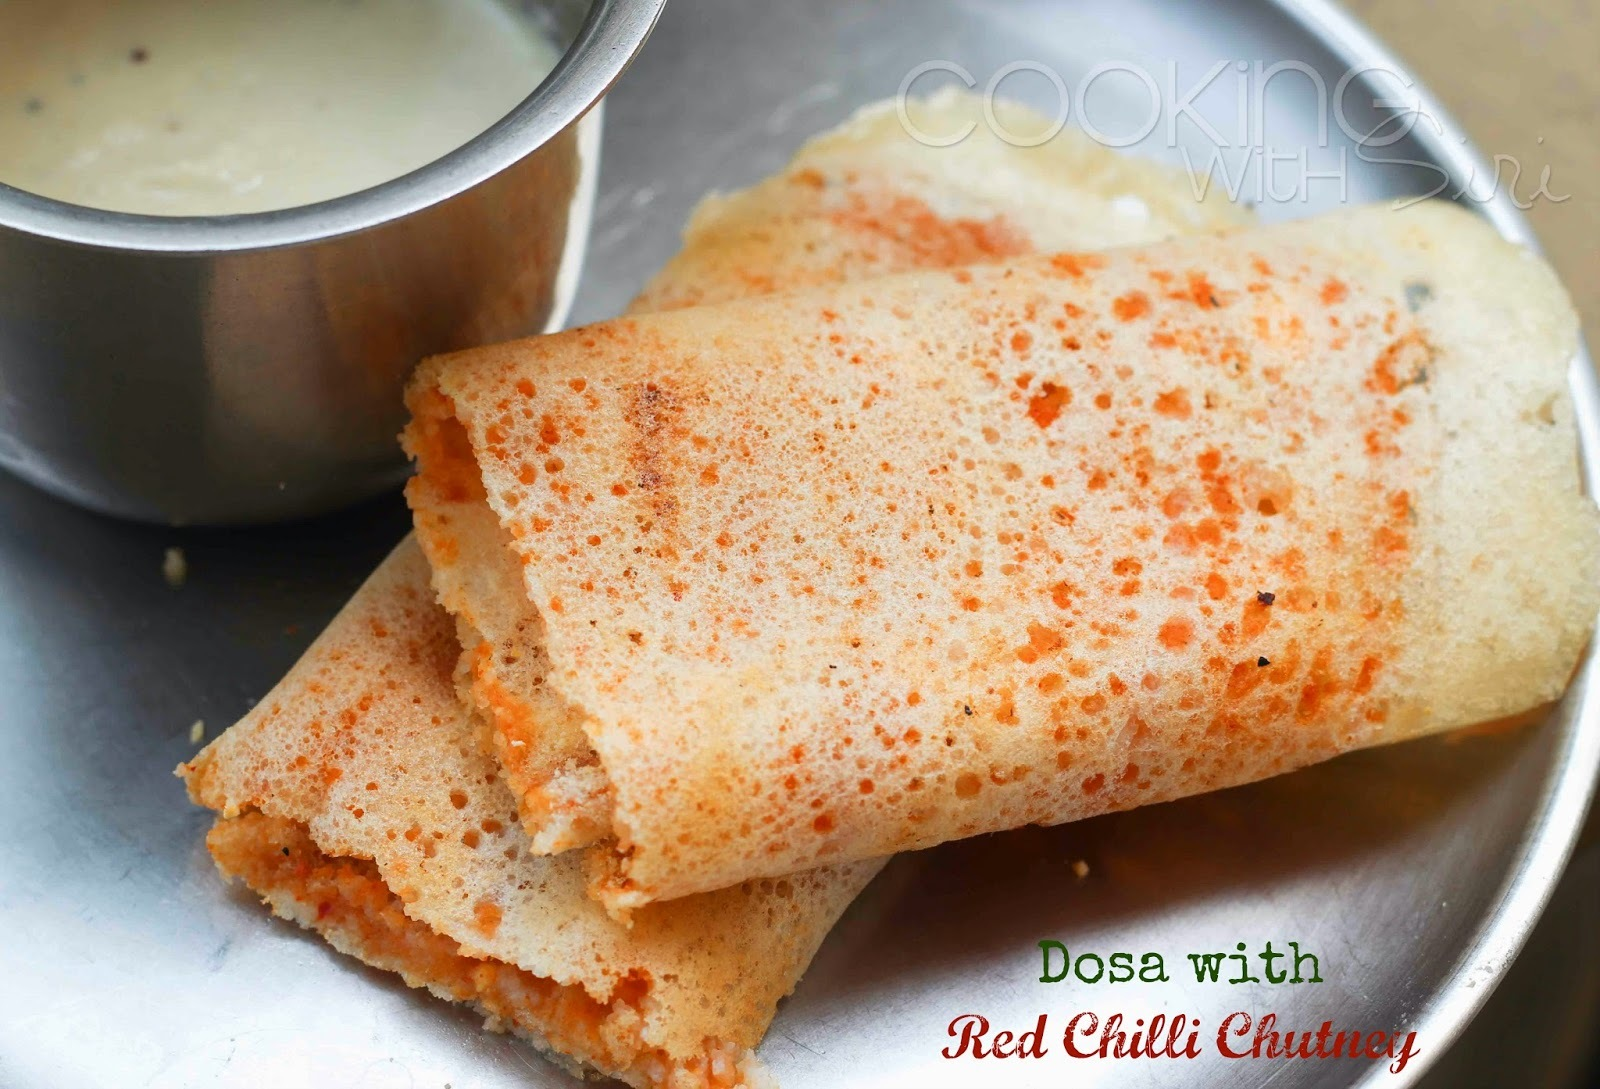 E for Erra Karam Dosa Recipe | Andhra (Rayalaseema) Style Dosas with Red Chilli Chutney